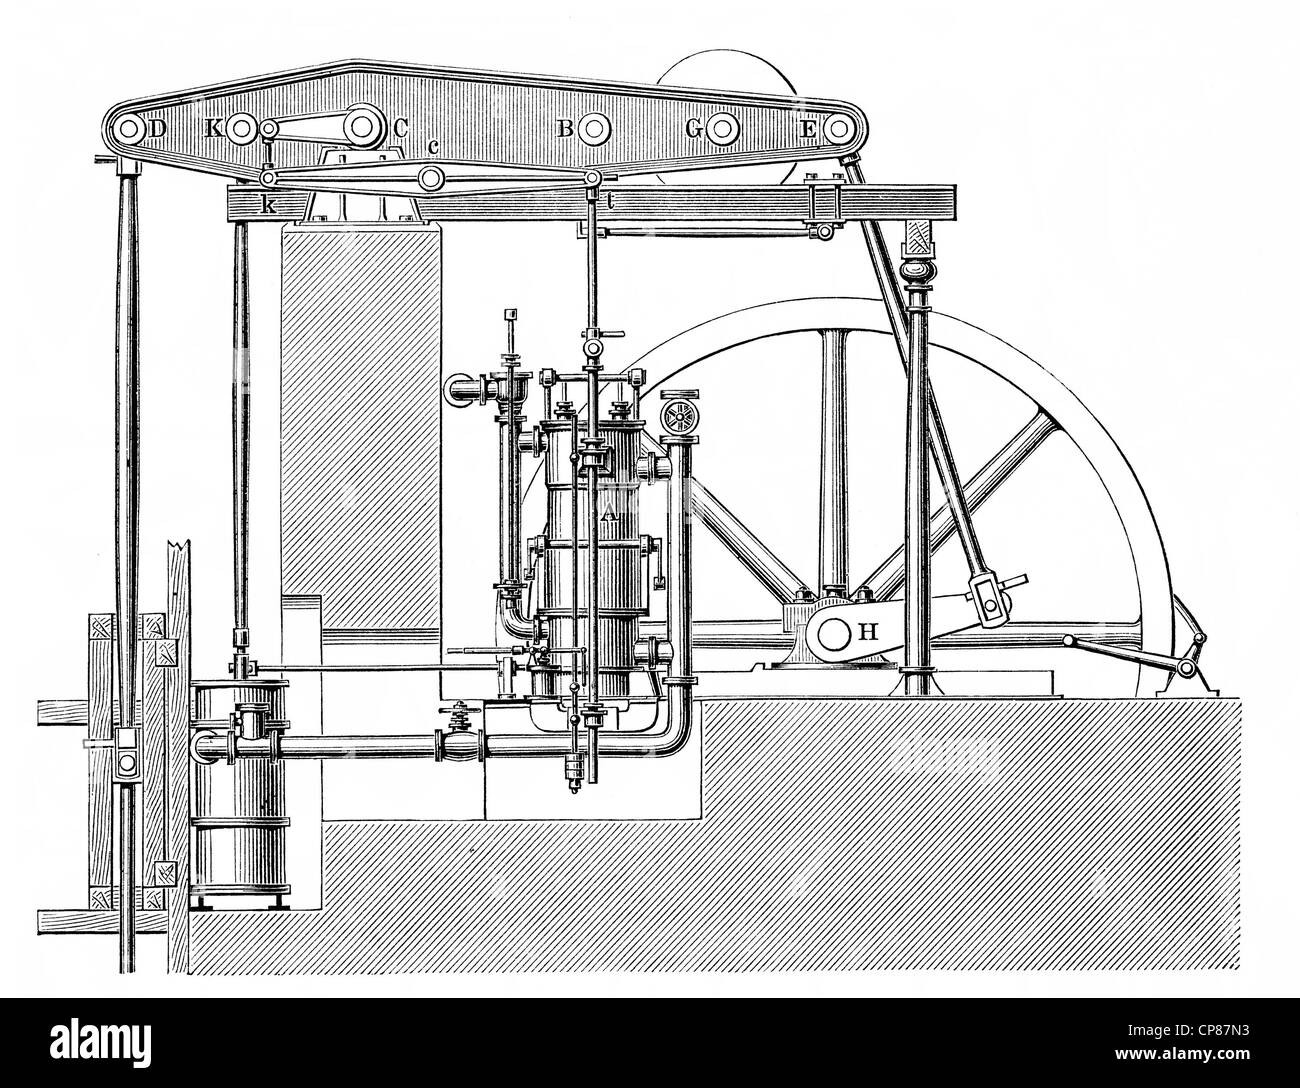 Kley's water column engine by Carl Kley, steam engine, piston heat engine,  the thermal energy or pressure contained in steam is